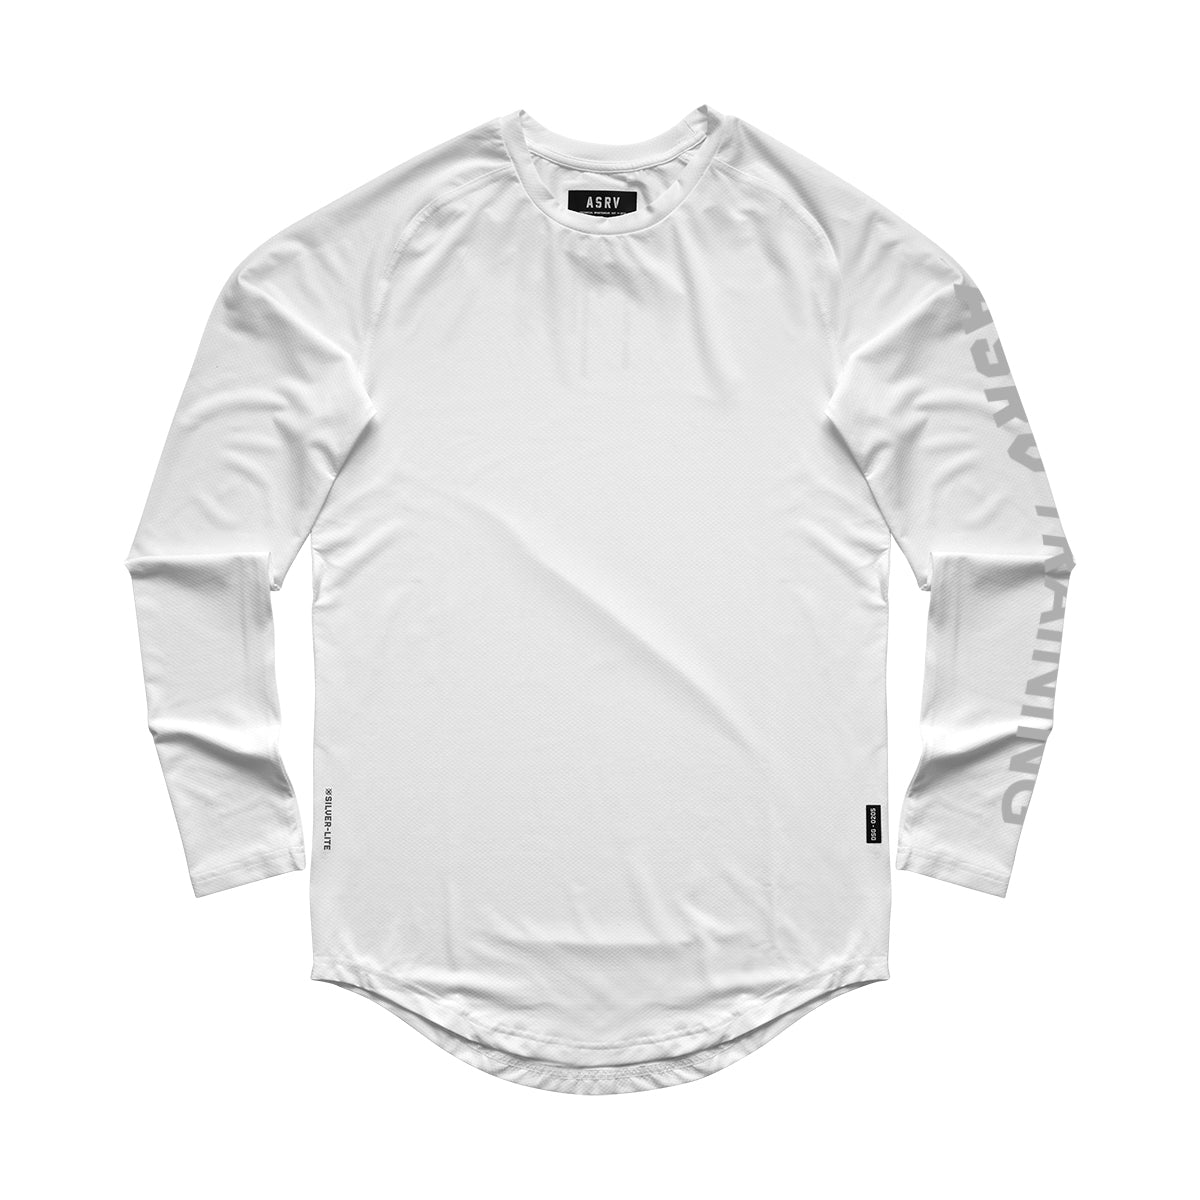 0205. Silver-Lite® Logo Long Sleeve - White